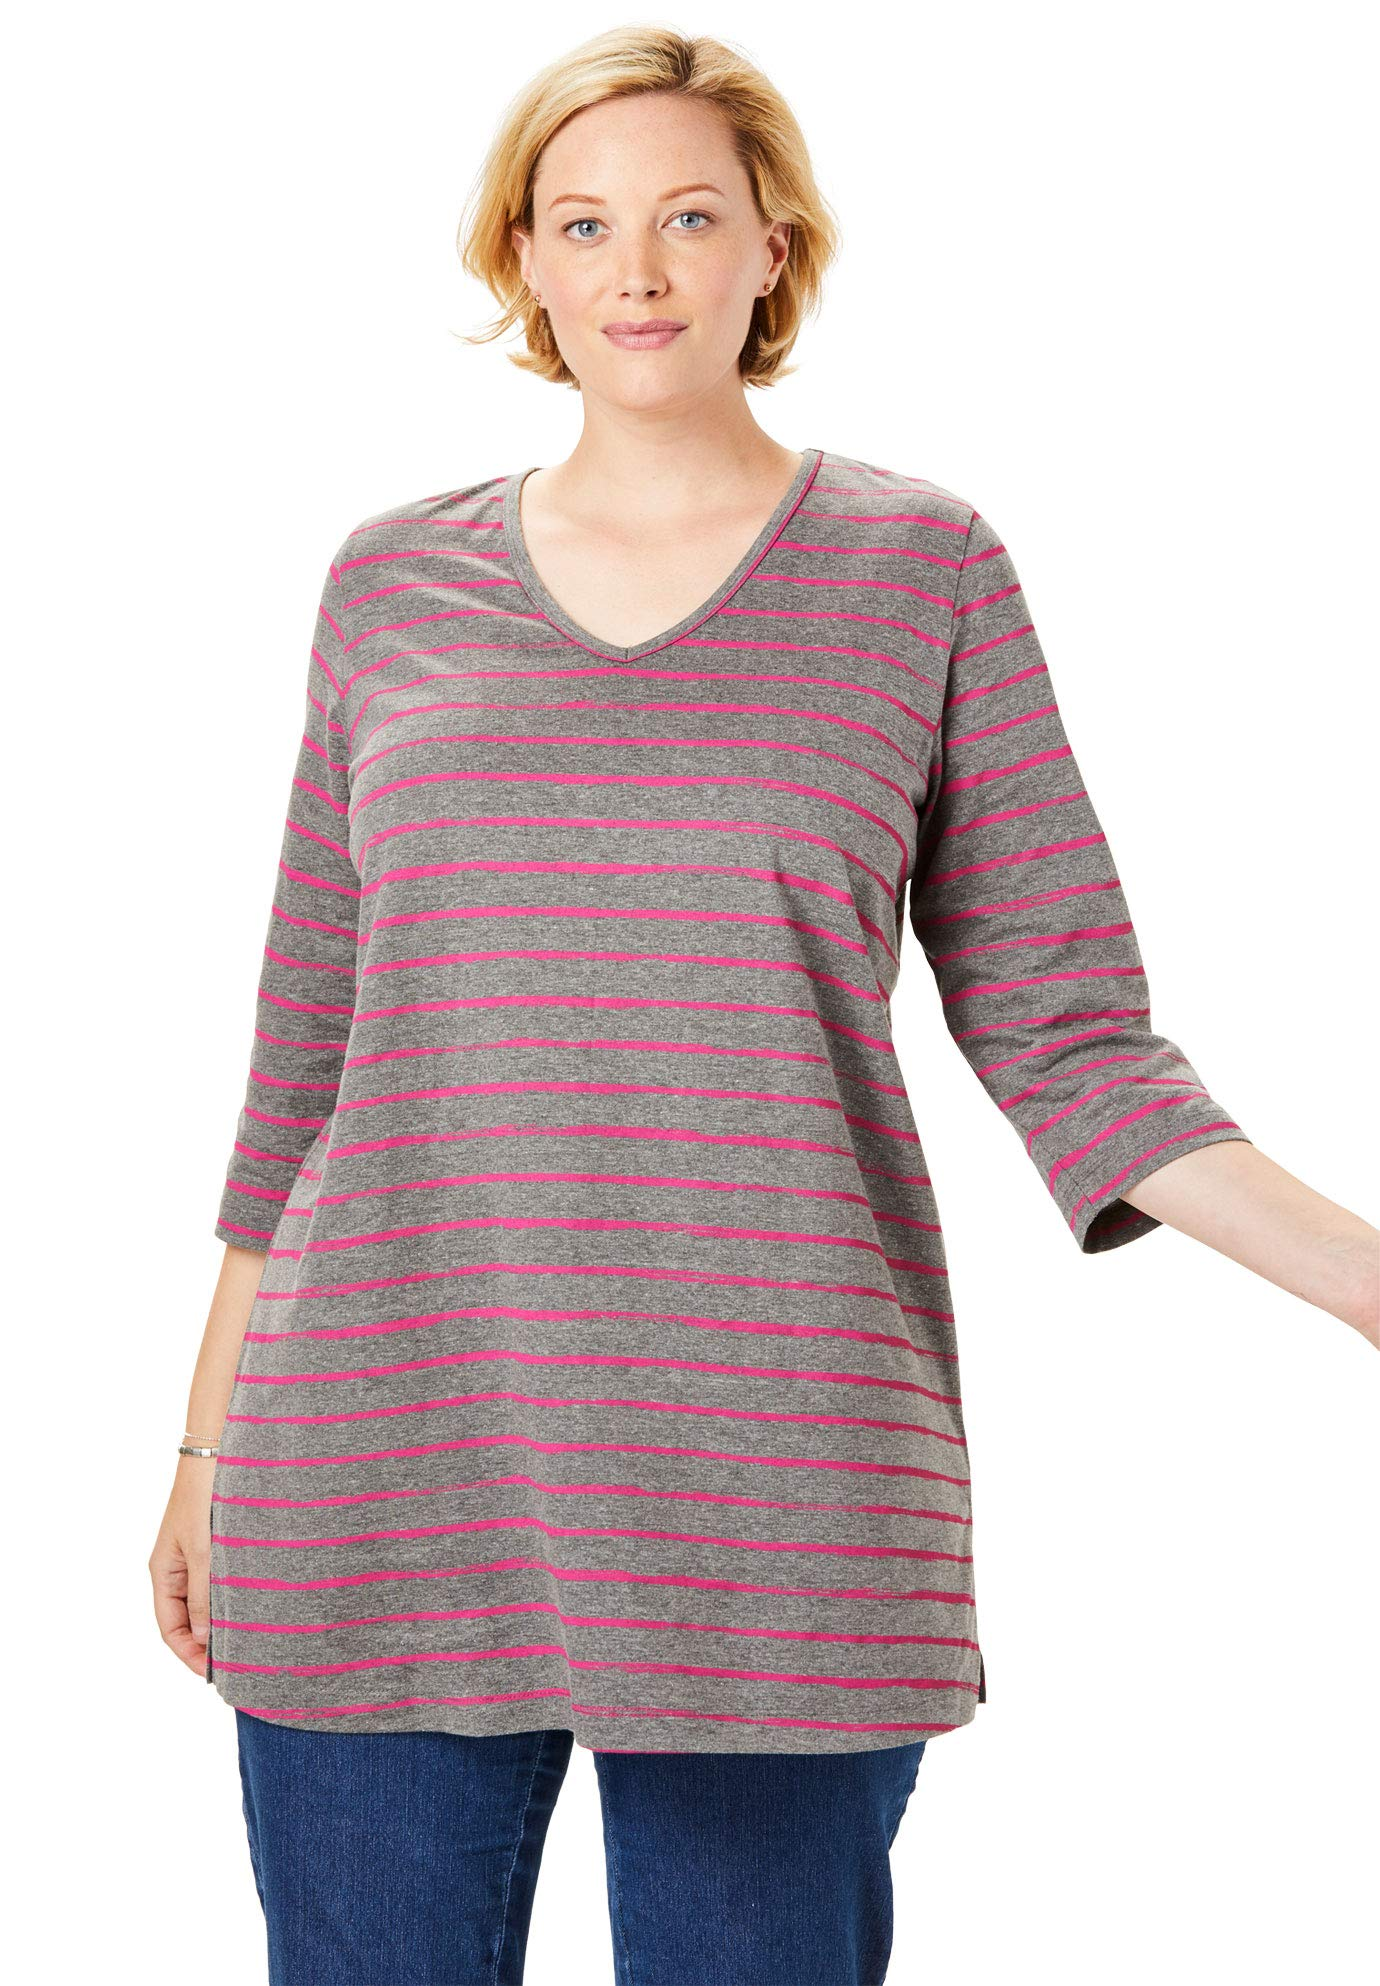 Woman Within Women's Plus Size Perfect V-Neck Three-Quarter Sleeve Tunic - Raspberry Sorbet Painterly Stripe, 18/20 by Woman Within